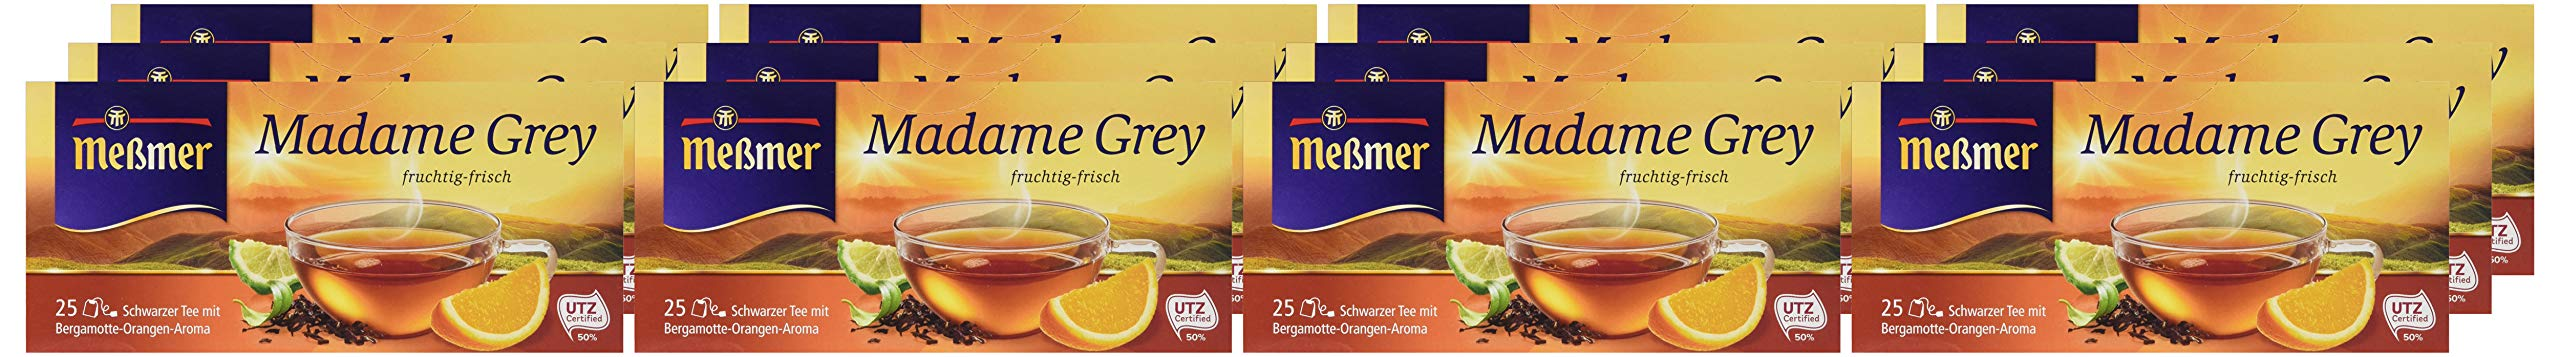 Messmer-Madame-Grey-Schwarzer-Tee-25-Beutel-12er-Pack-12-x-44-g